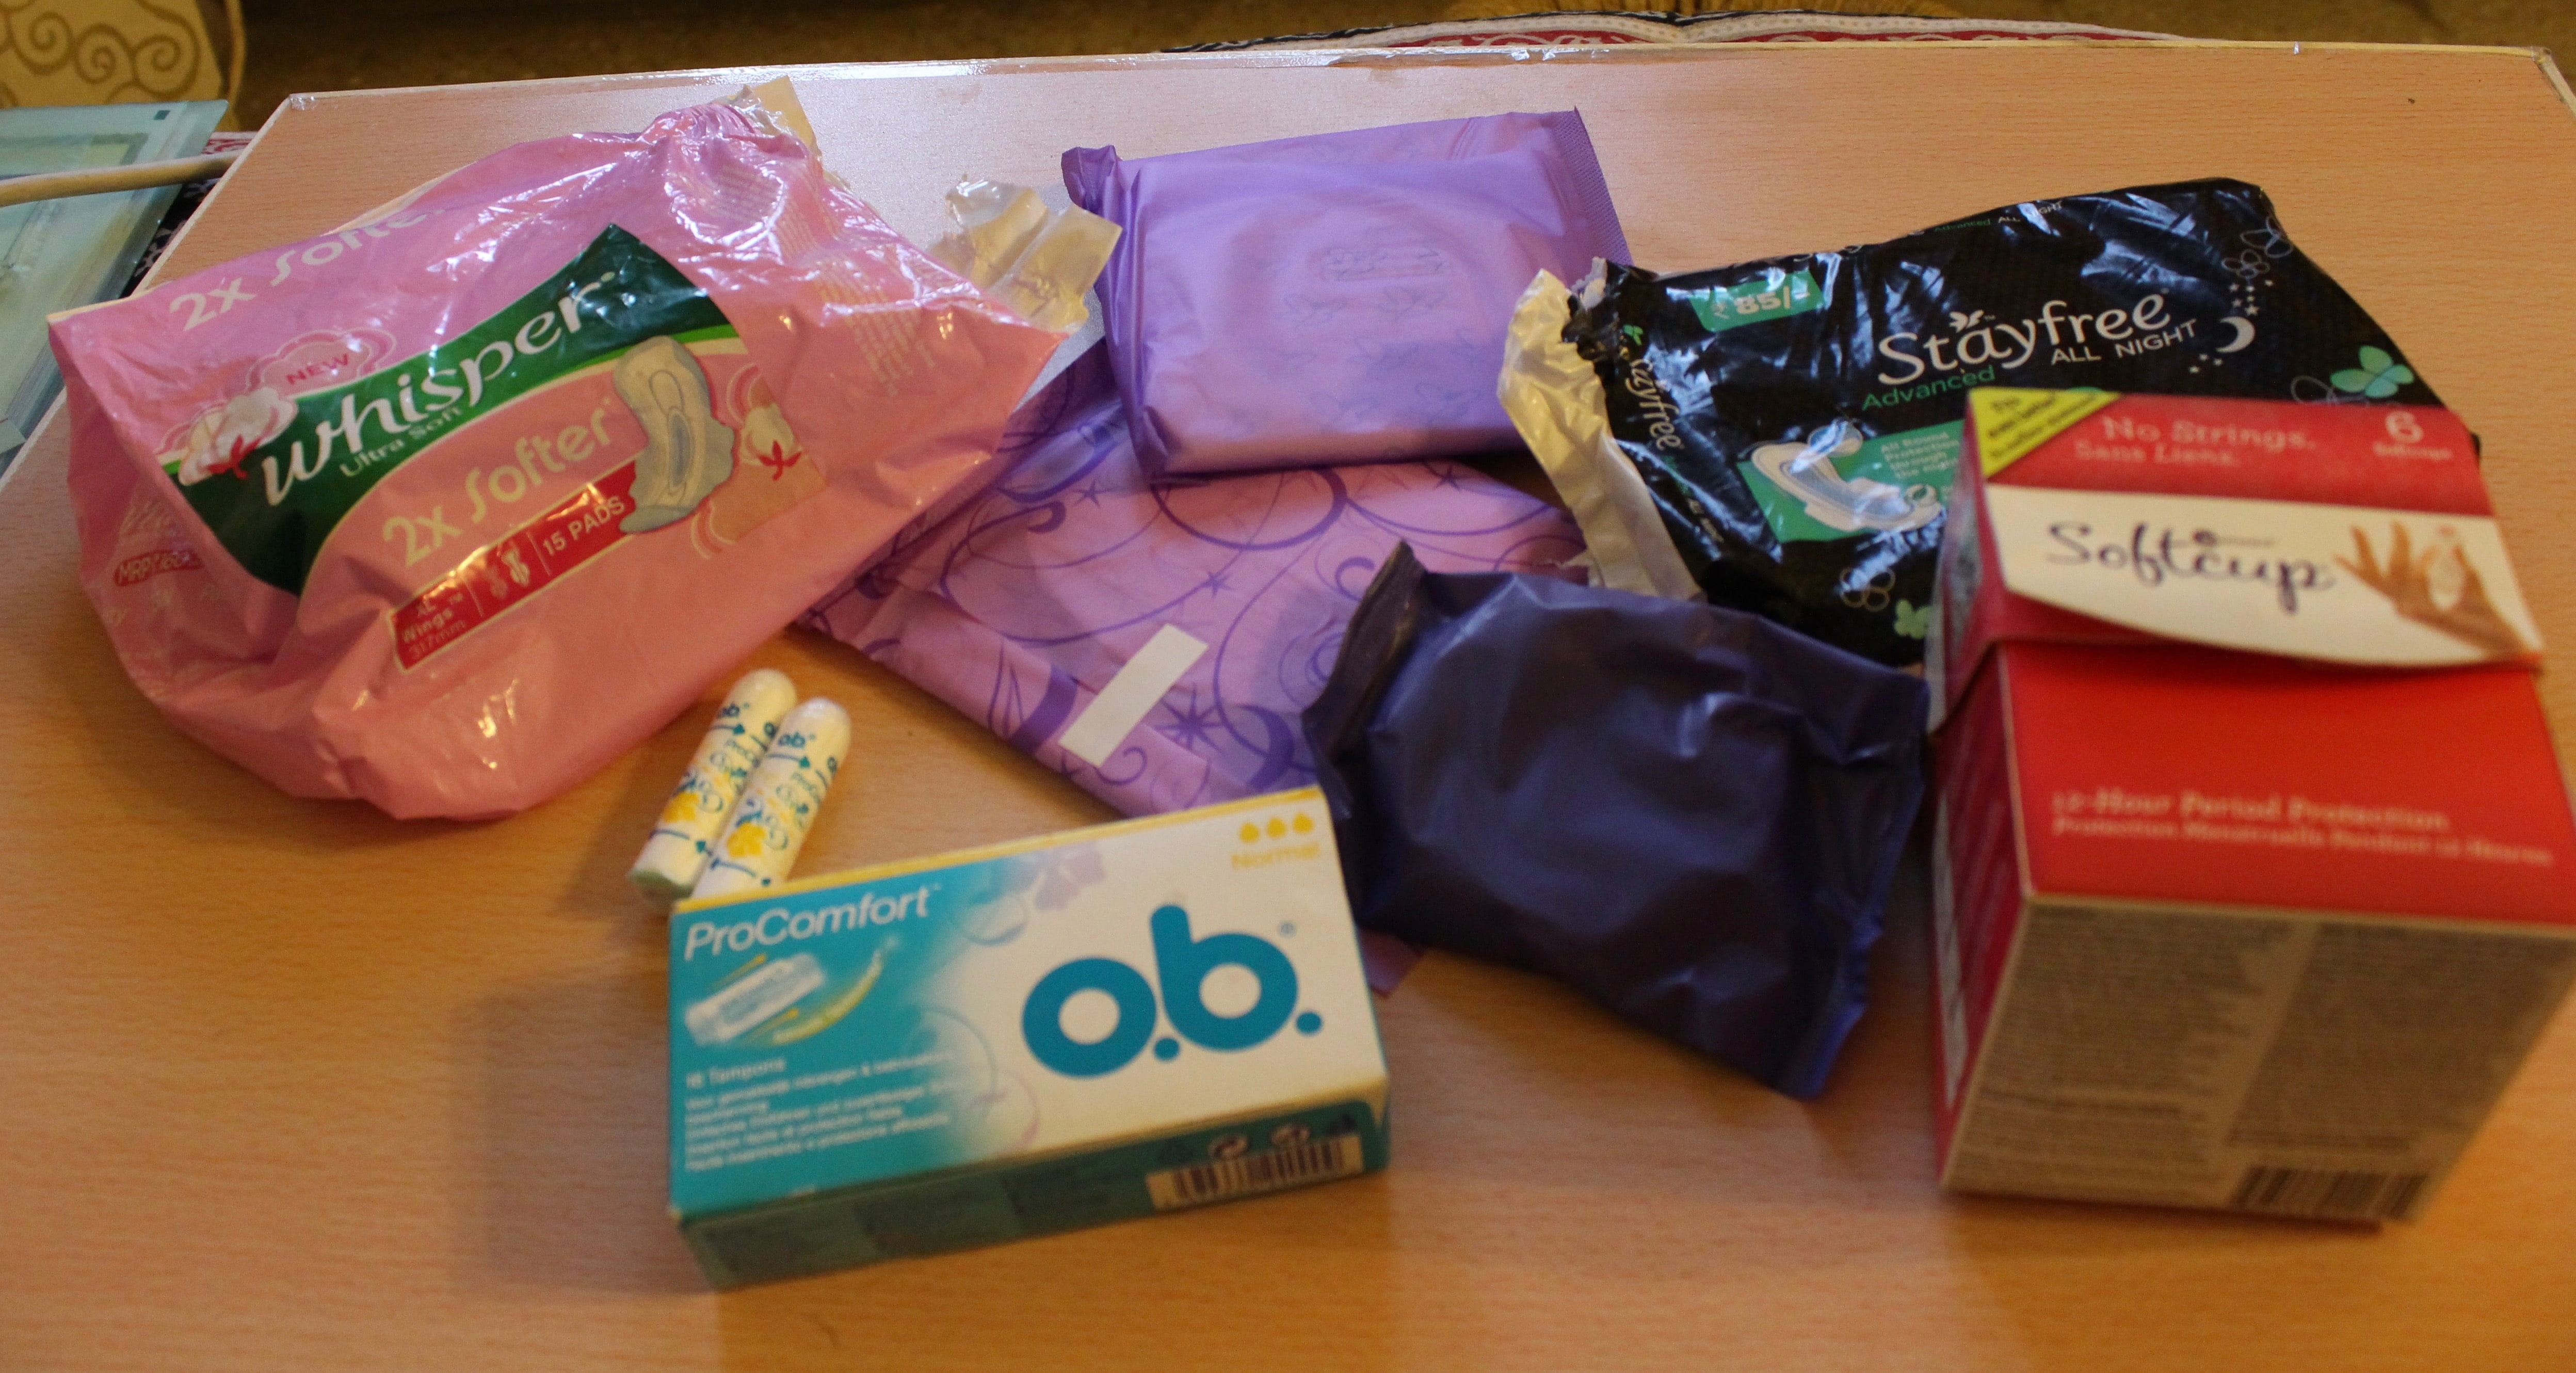 A picture of sanitary pads, tampons and menstrual cups.